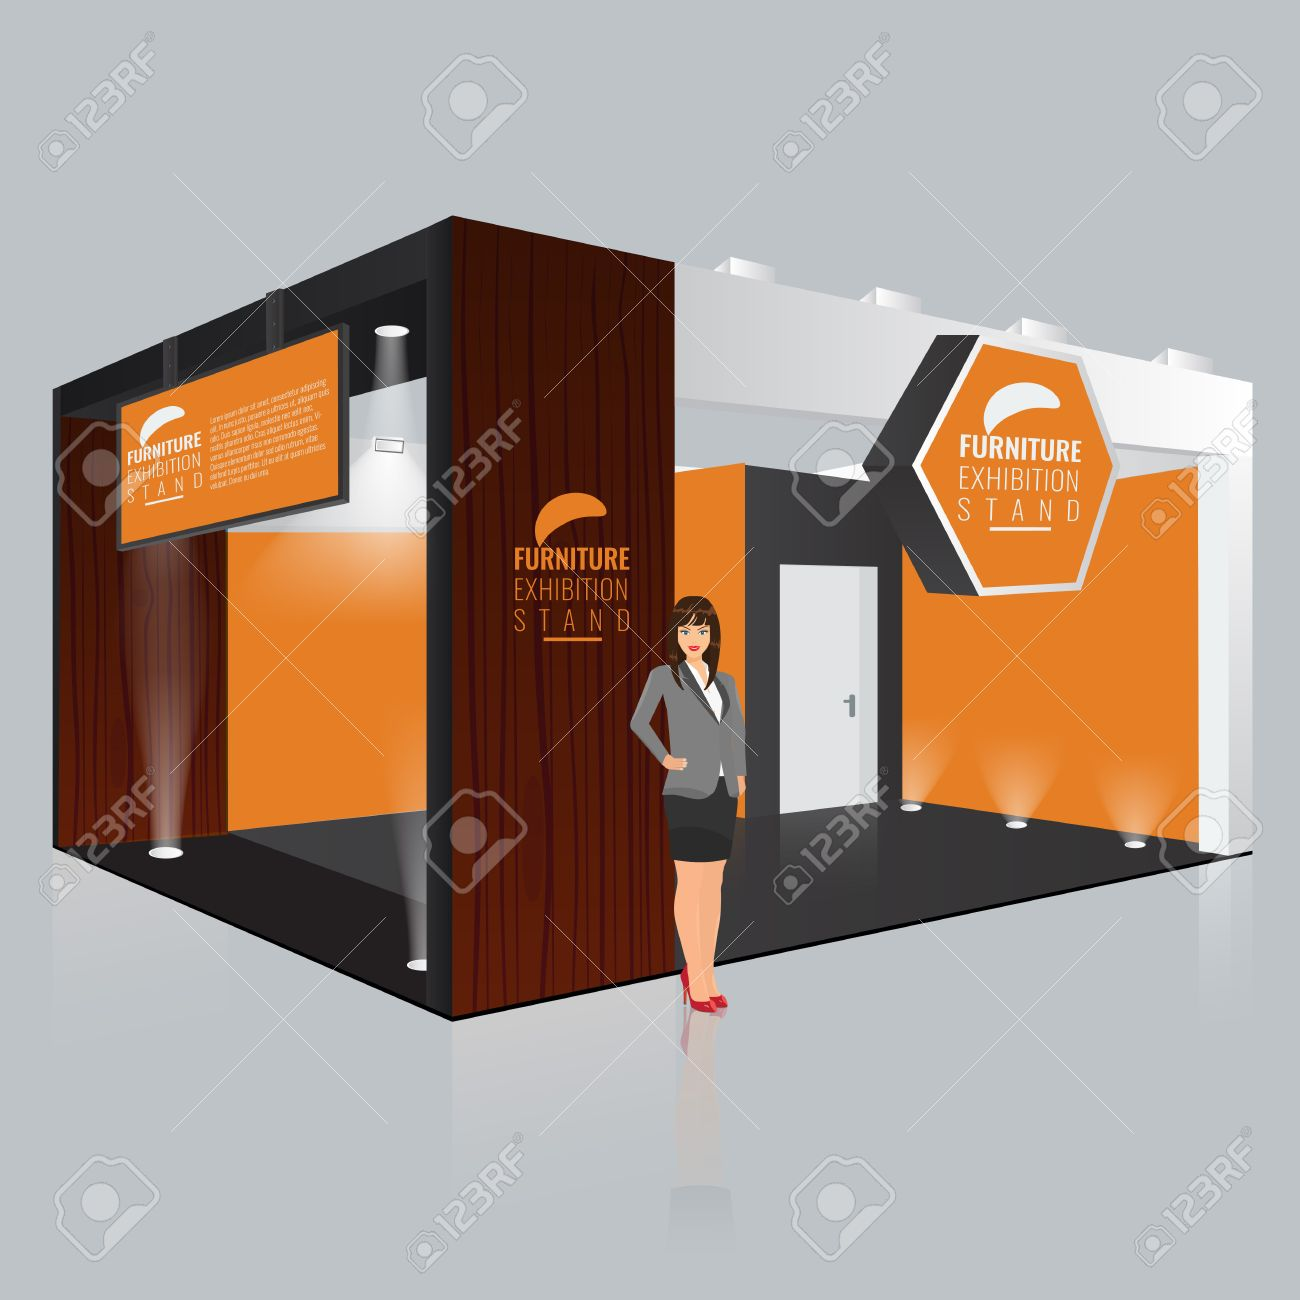 Exhibition Stand Design Mockup Free : Blank mock creative exhibition stand design stock photo edit now